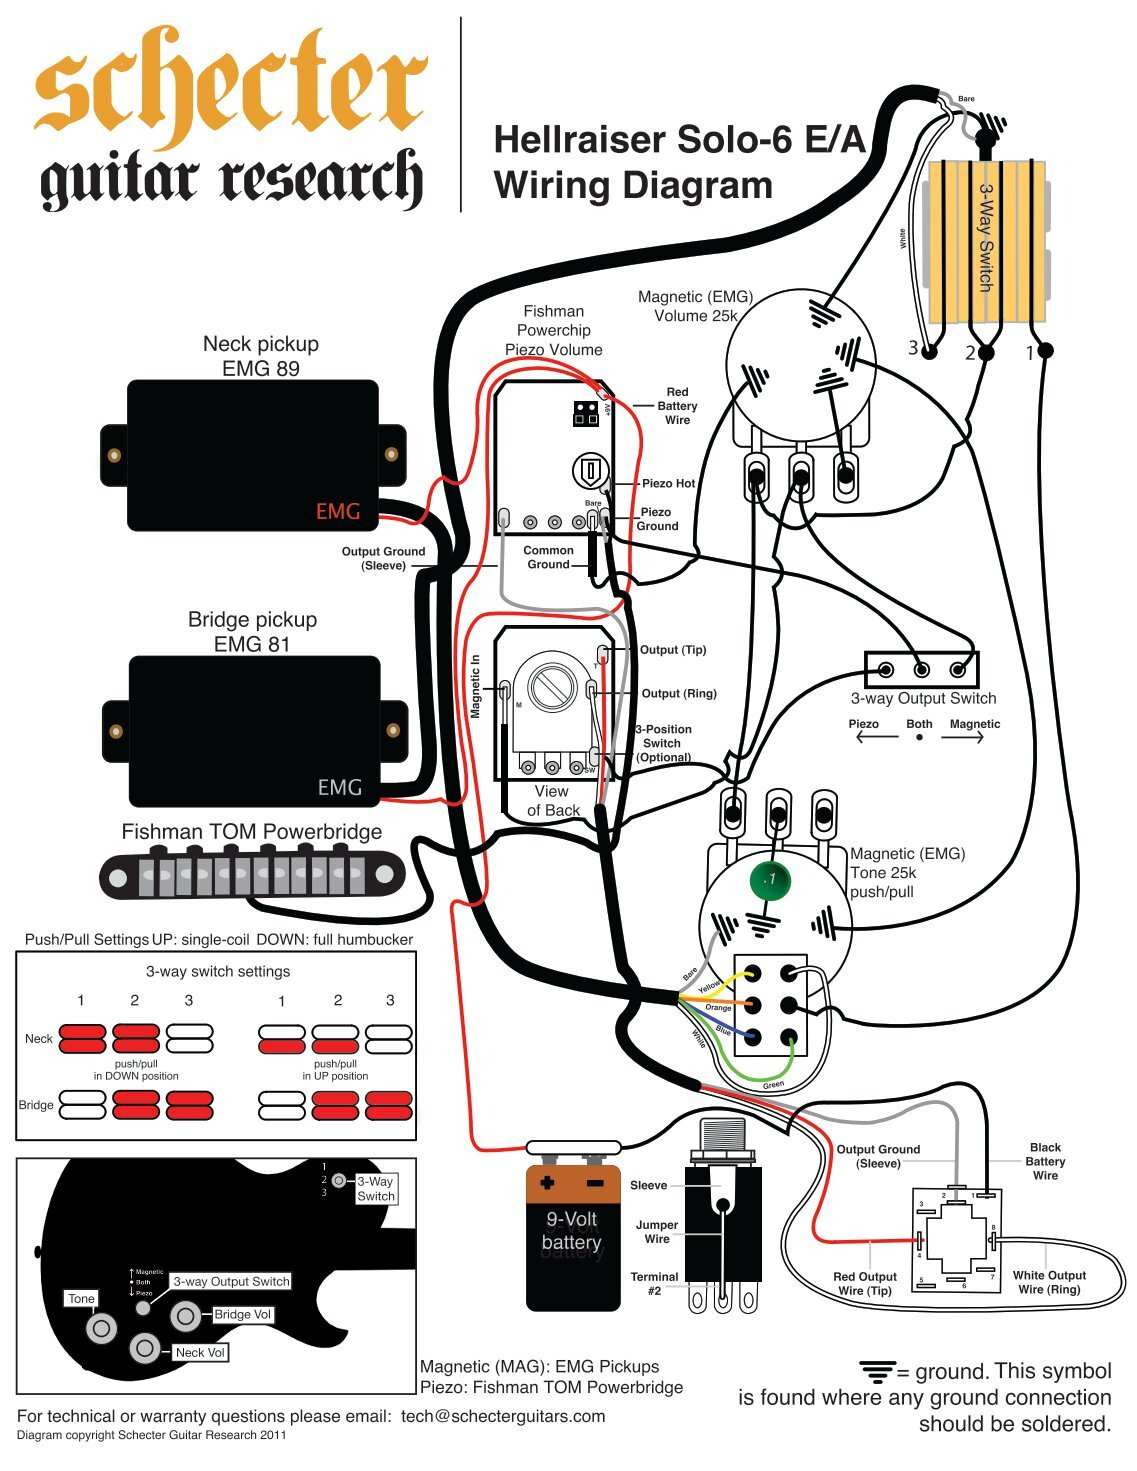 hellraiser solo 6 wiring diagram schecter guitars?resize\\\\\\\\\\\=665%2C860\\\\\\\\\\\&ssl\\\\\\\\\\\=1 outstanding emg solderless wiring diagram contemporary wiring  at fashall.co